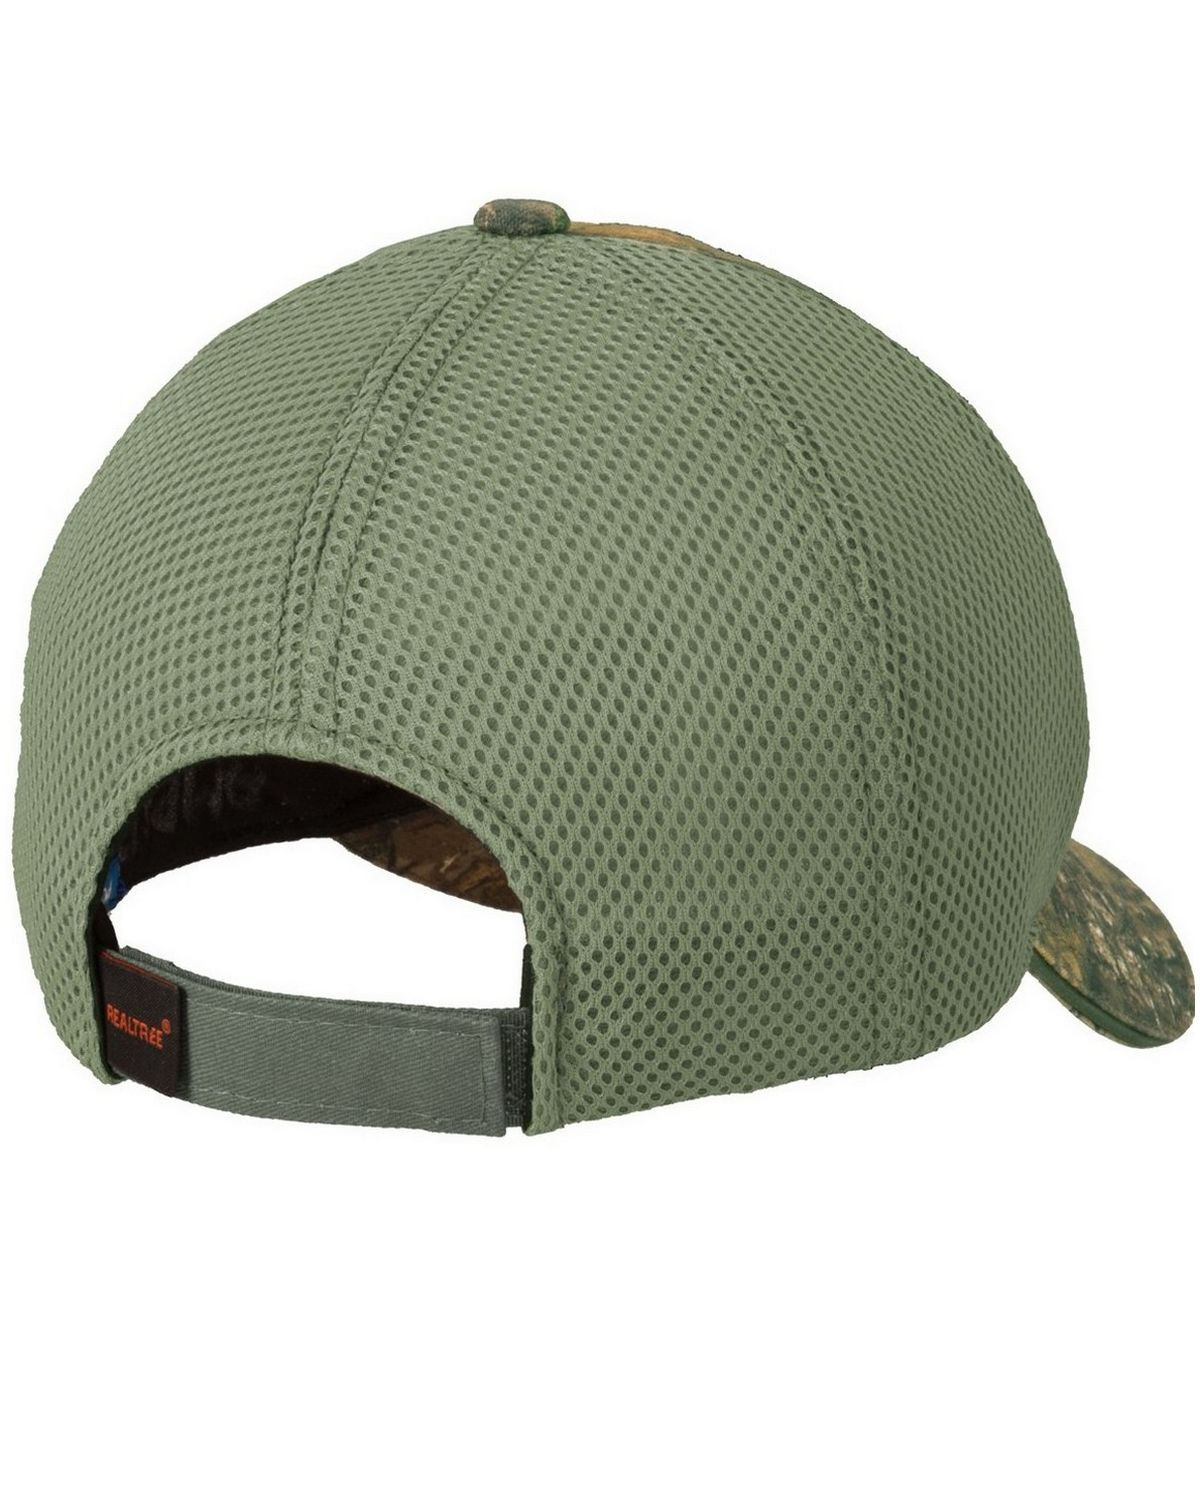 3072a0f7b40 ... Port Authority C912 Camouflage Cap. 2. Port Authority C912 Camouflage  Cap with Air Mesh Back